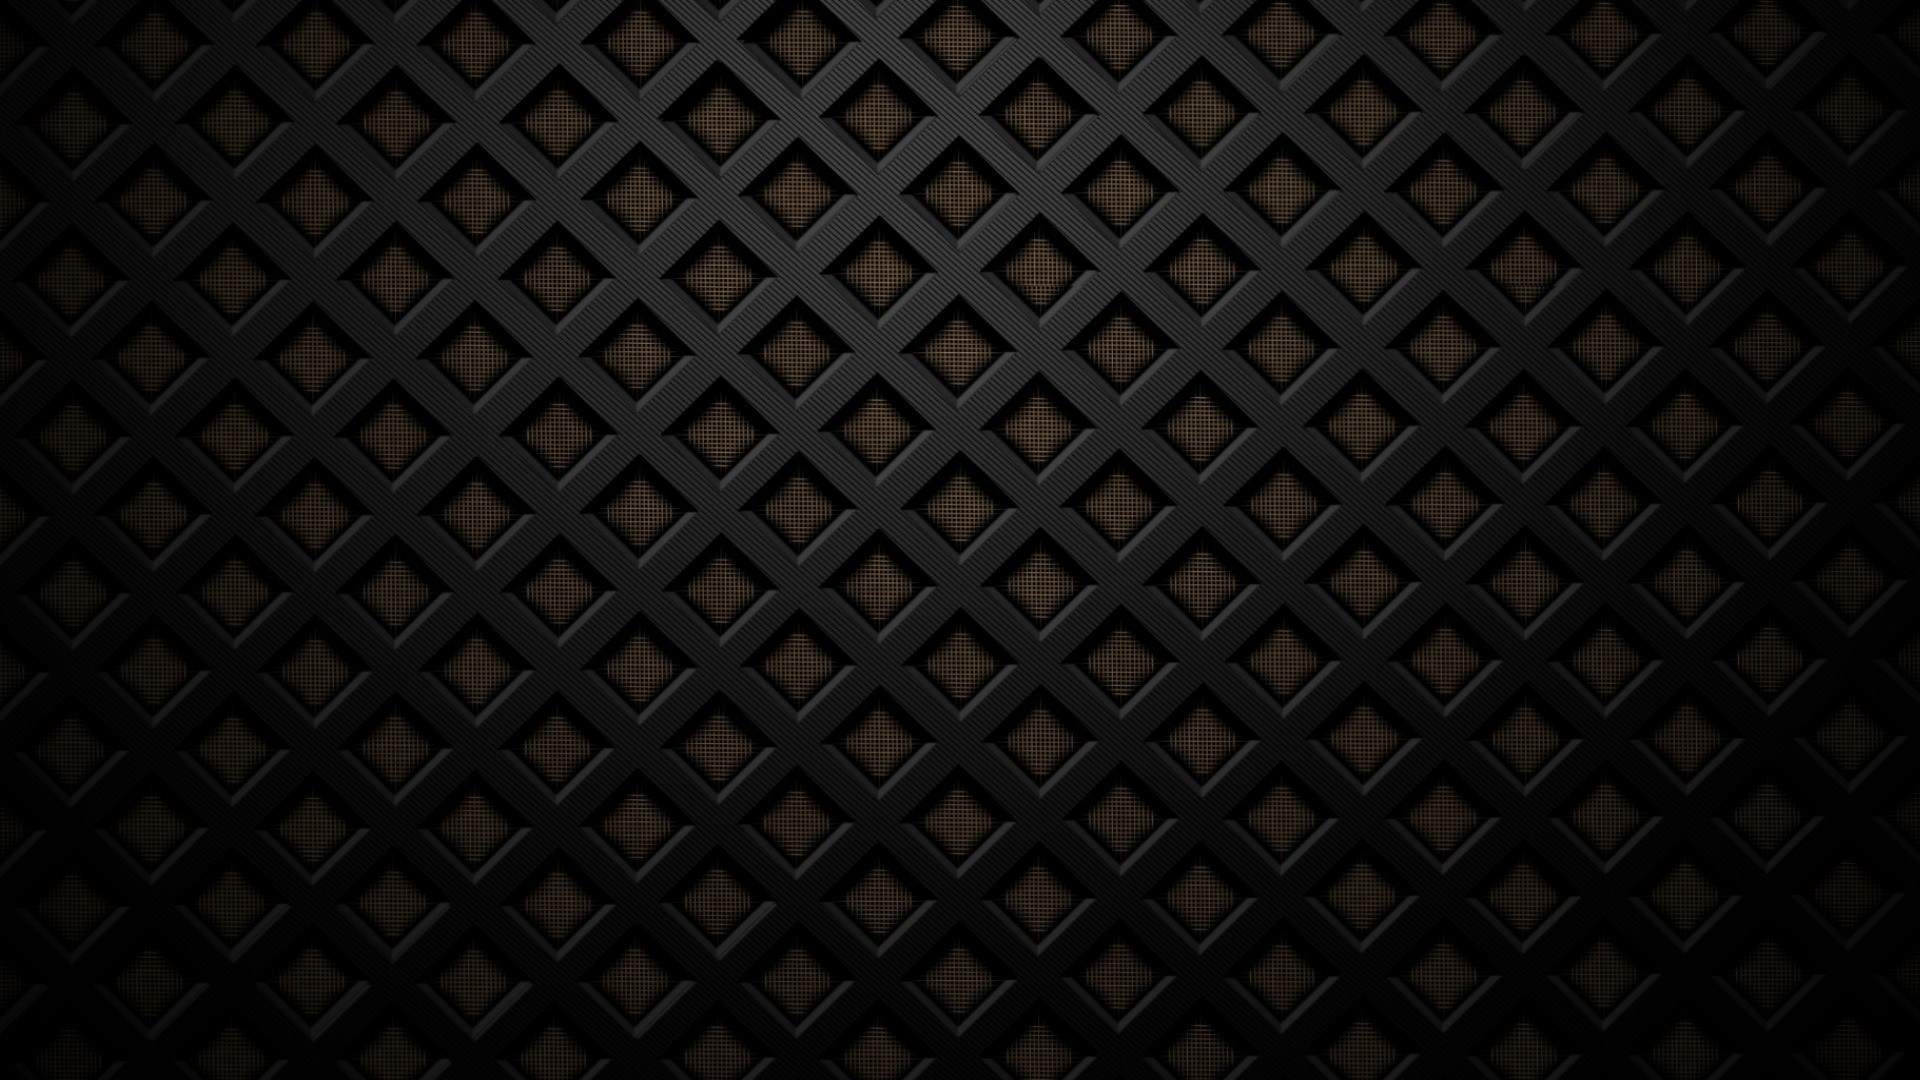 Black-Texture-Wallpapers-Pc.jpg (1920×1080) | Textures for Edits |  Pinterest | Wallpaper, 3d wallpaper and Black wallpaper